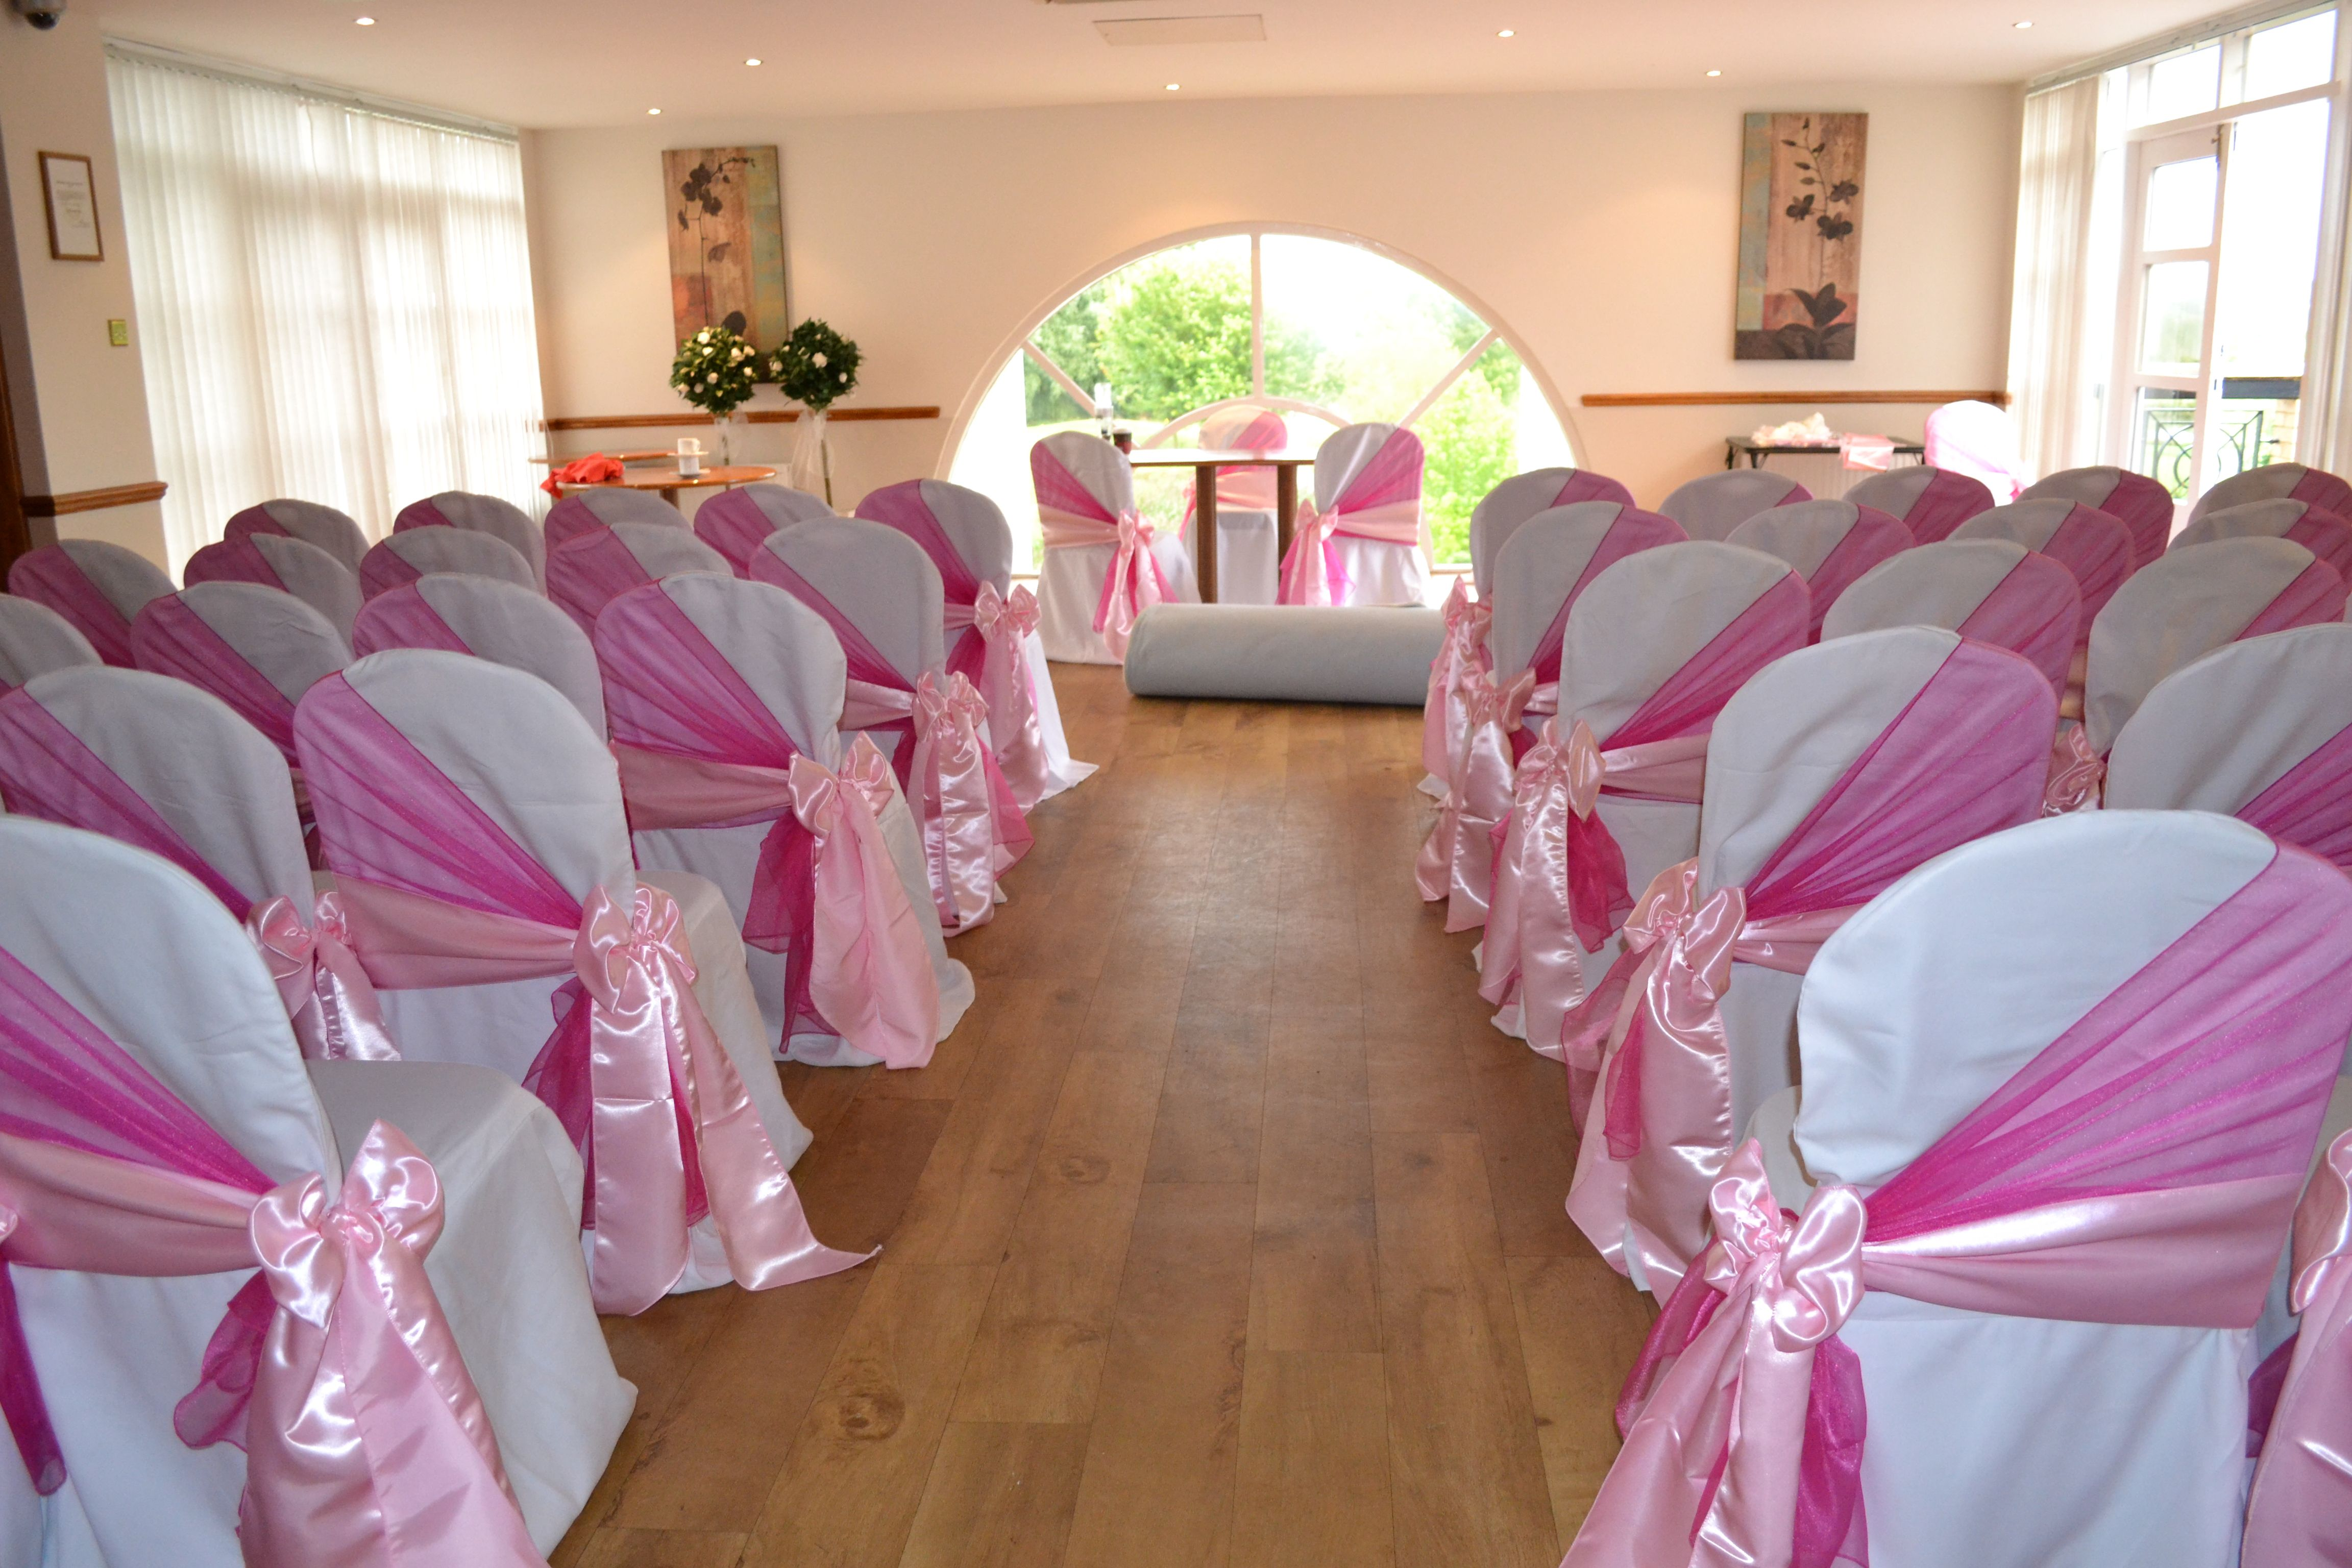 Fuschia organza shawls and baby pink satin bows on white